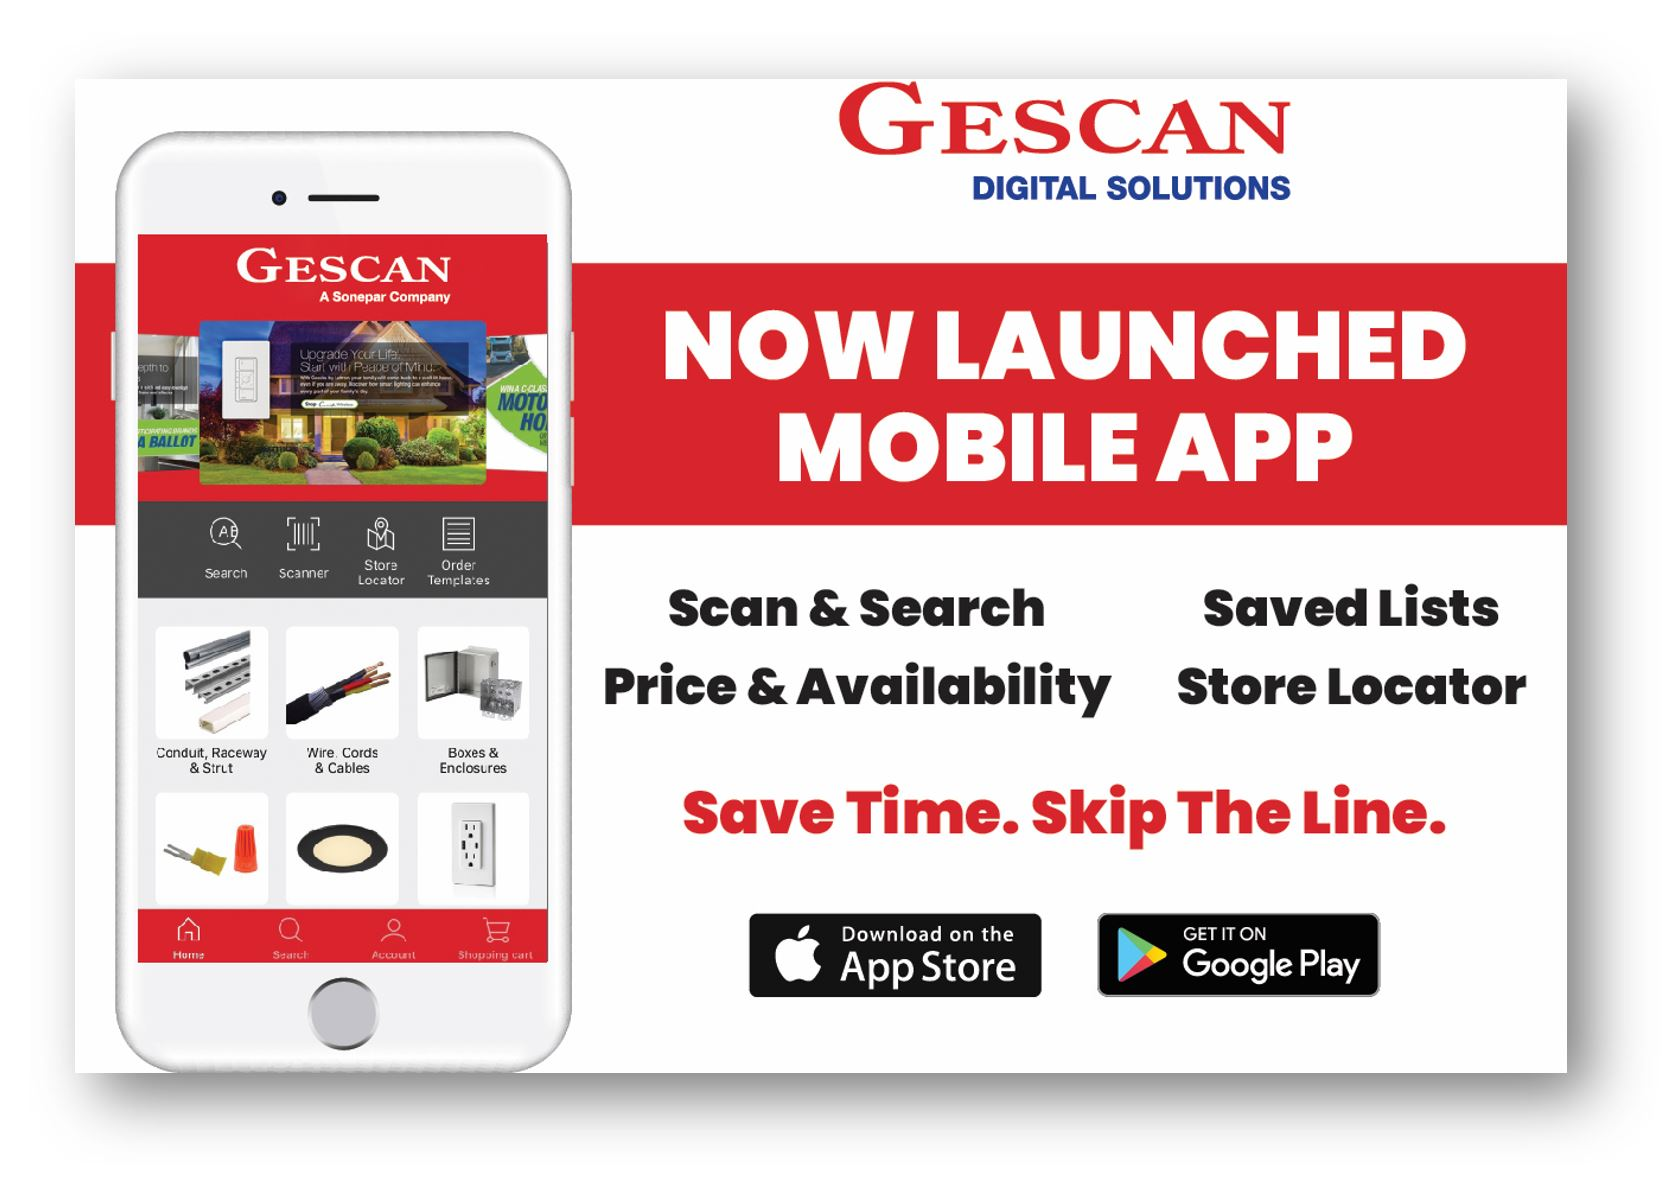 Introducing Gescan's New Mobile App